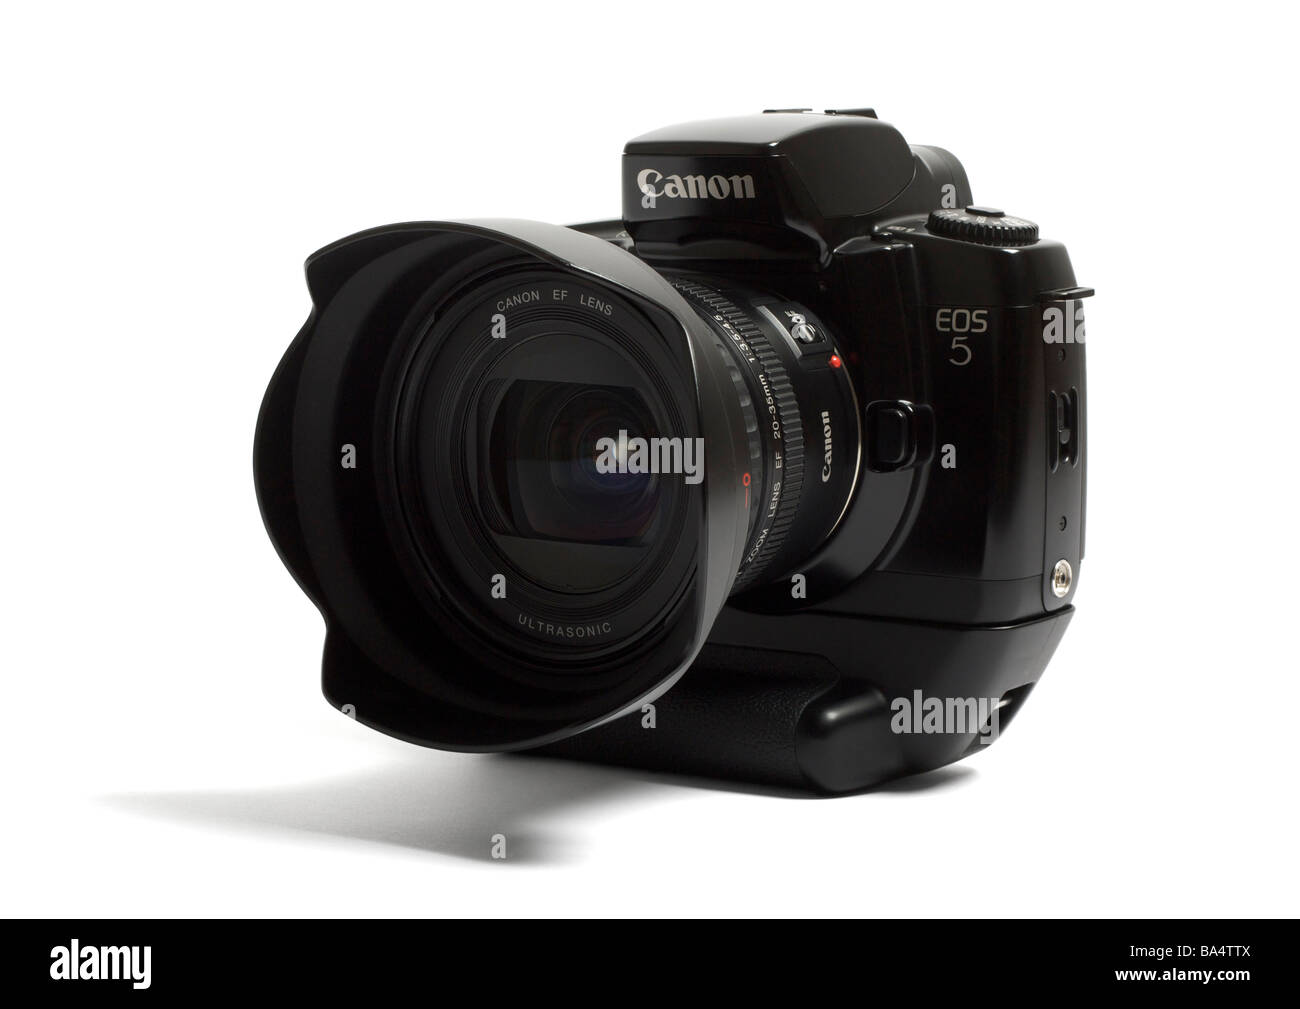 Canon EOS 5 35mm SLR camera on white background - Stock Image